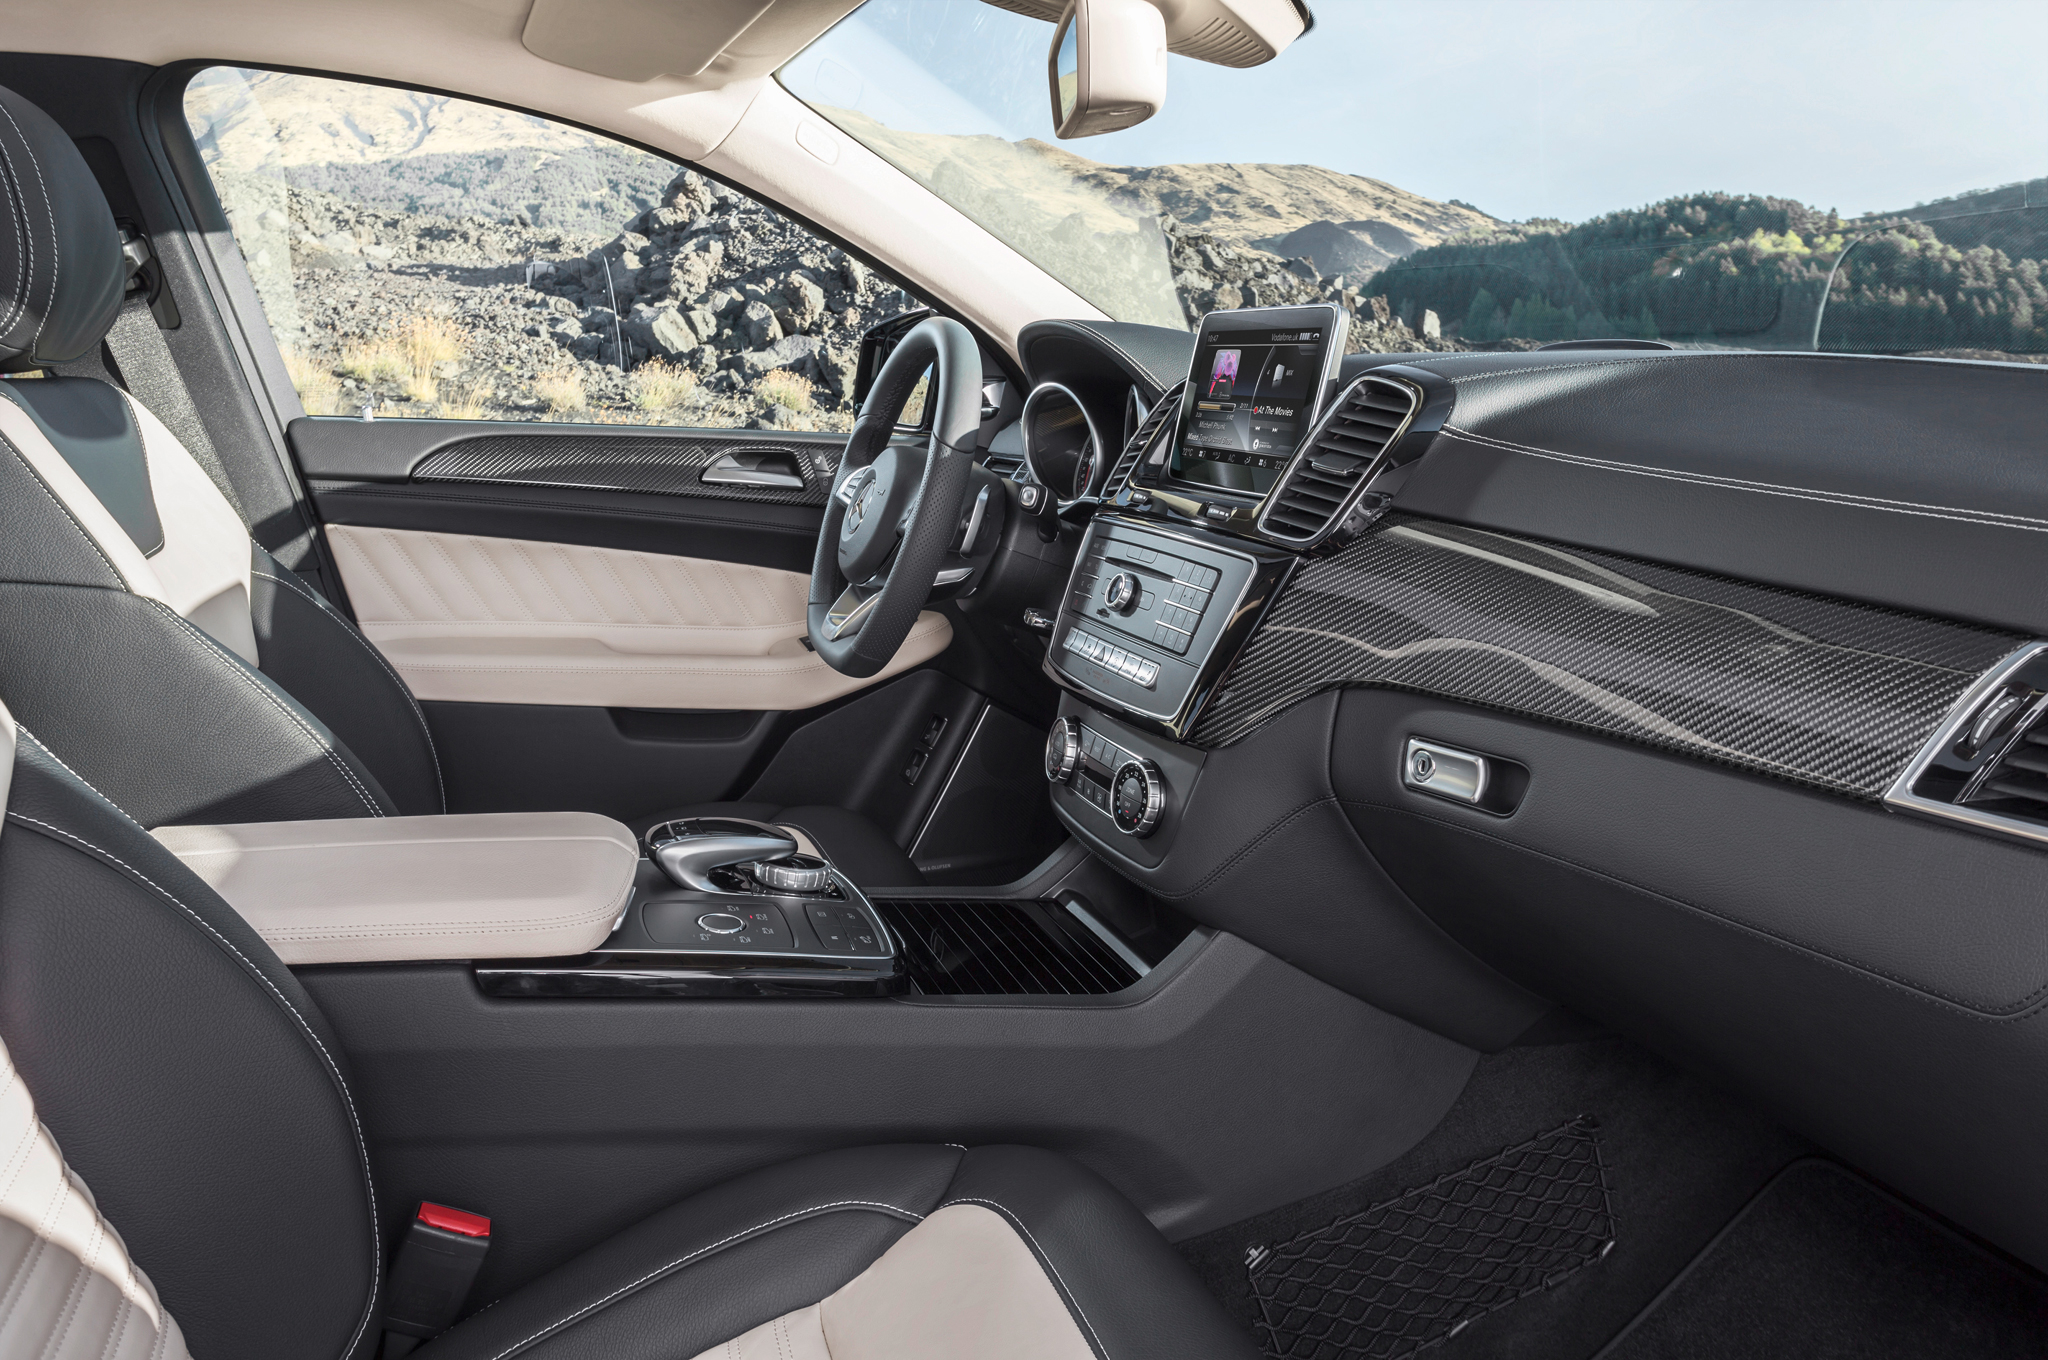 2016 Mercedes Benz AMG GLE63s Coupe Front Interior Profile